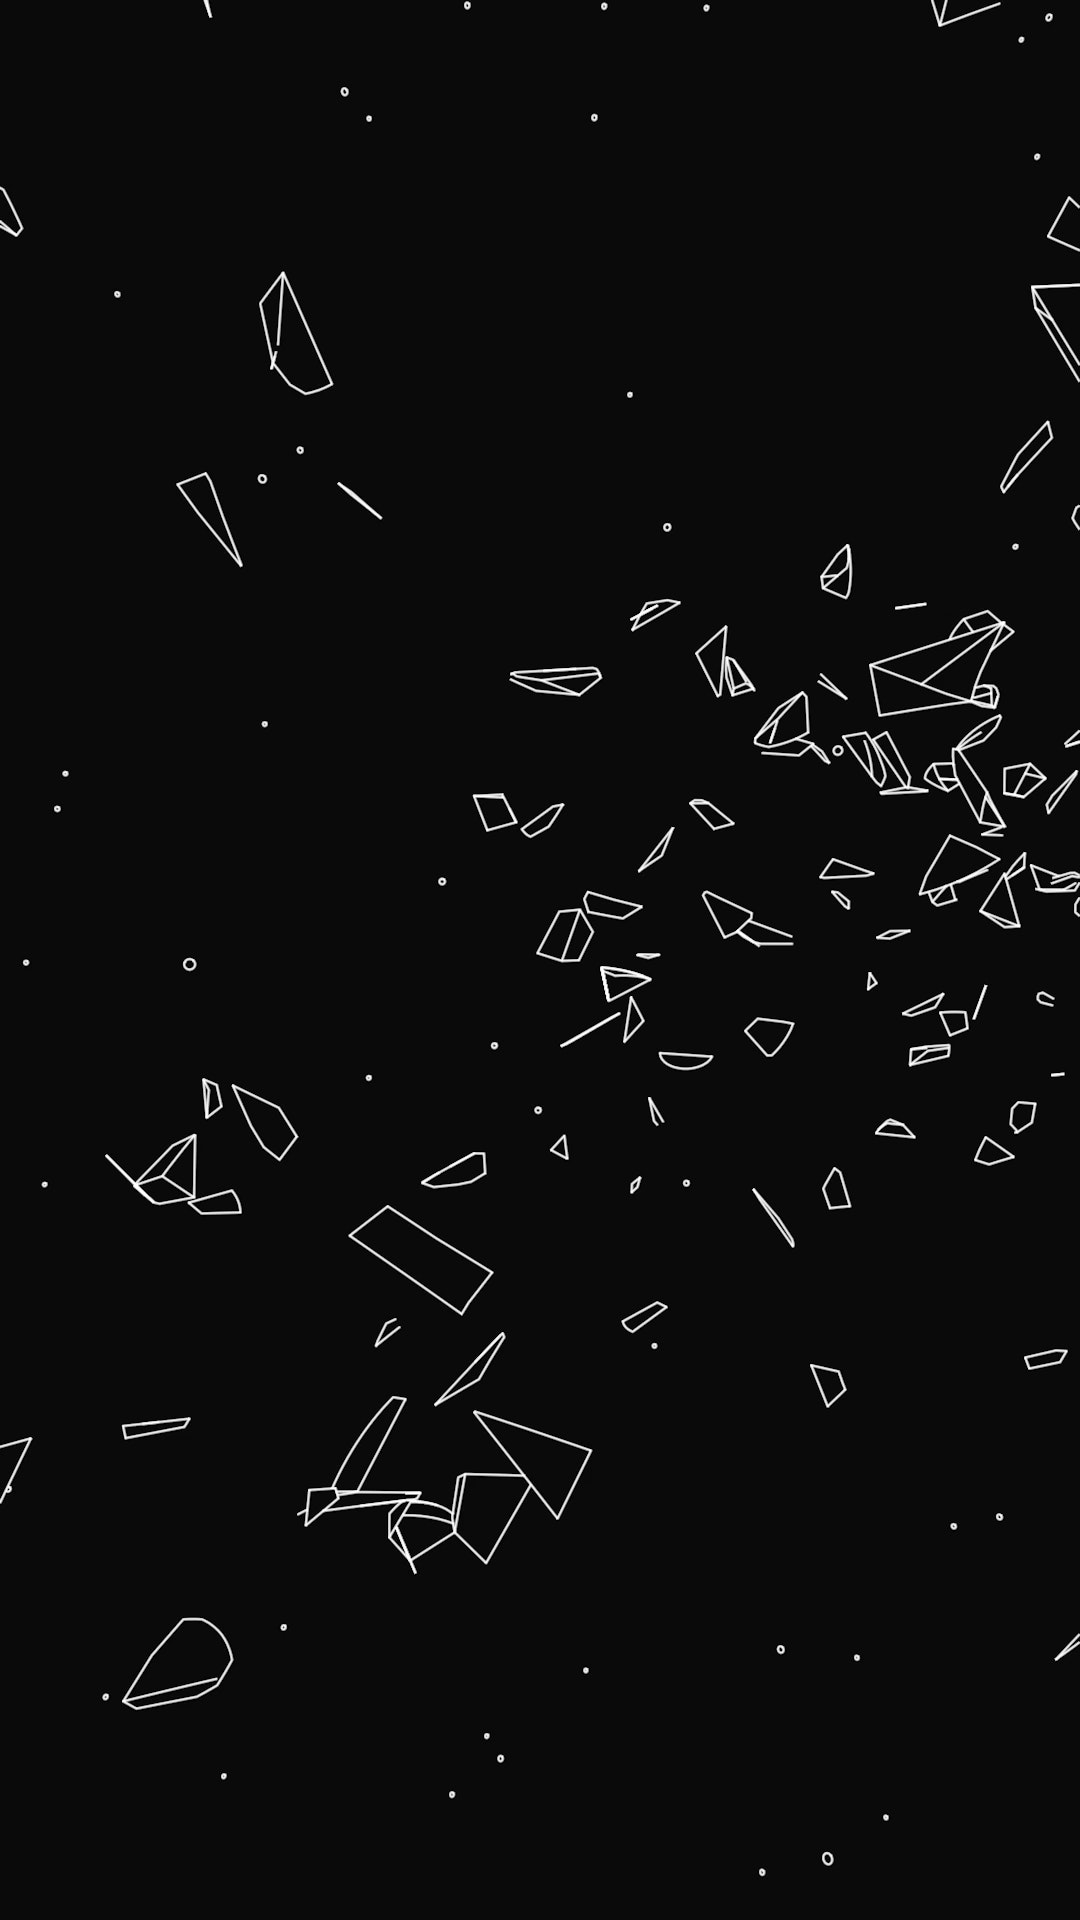 asteroid belt by pi slices electric objects